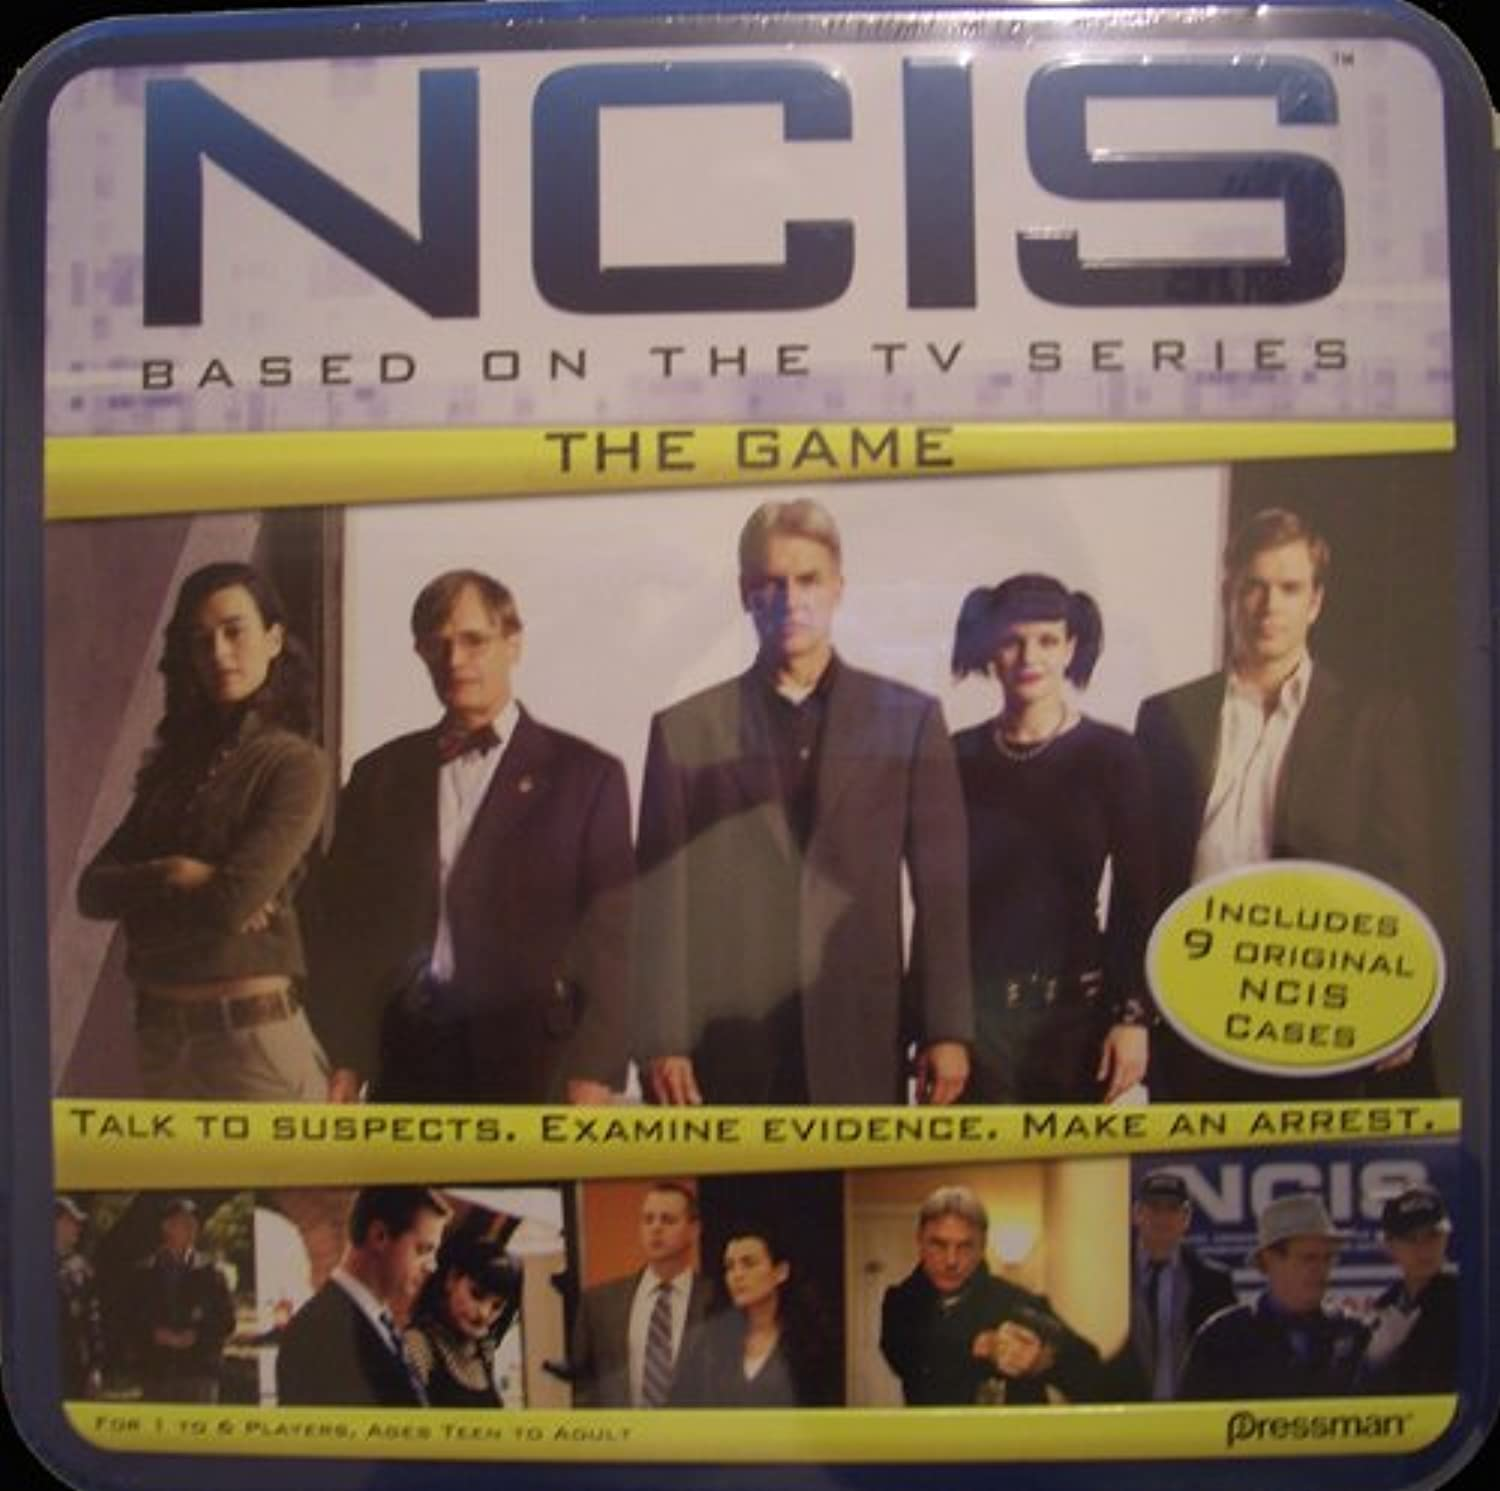 NCIS The Game - Based on the TV Series